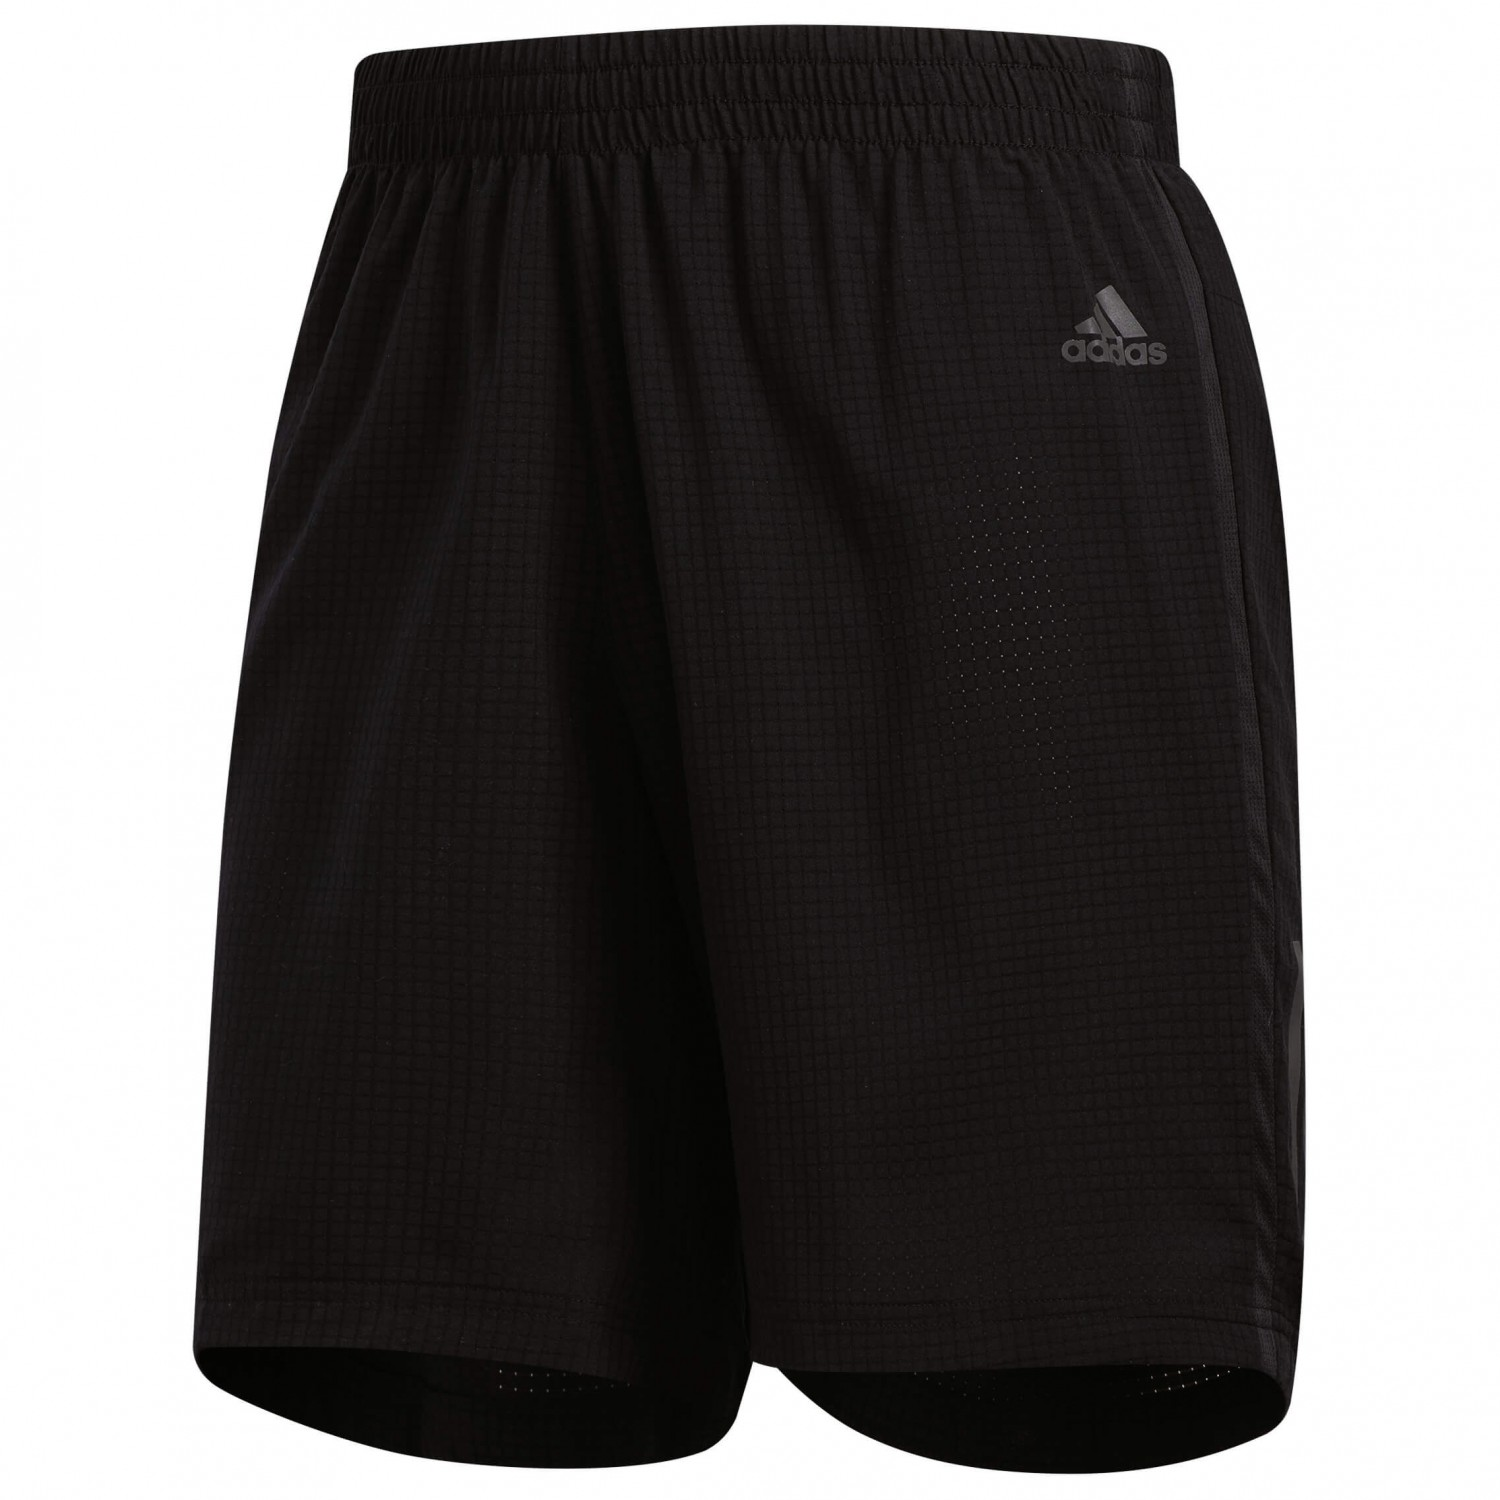 Adidas Response Cooler Short - Running Shorts Men's | Buy